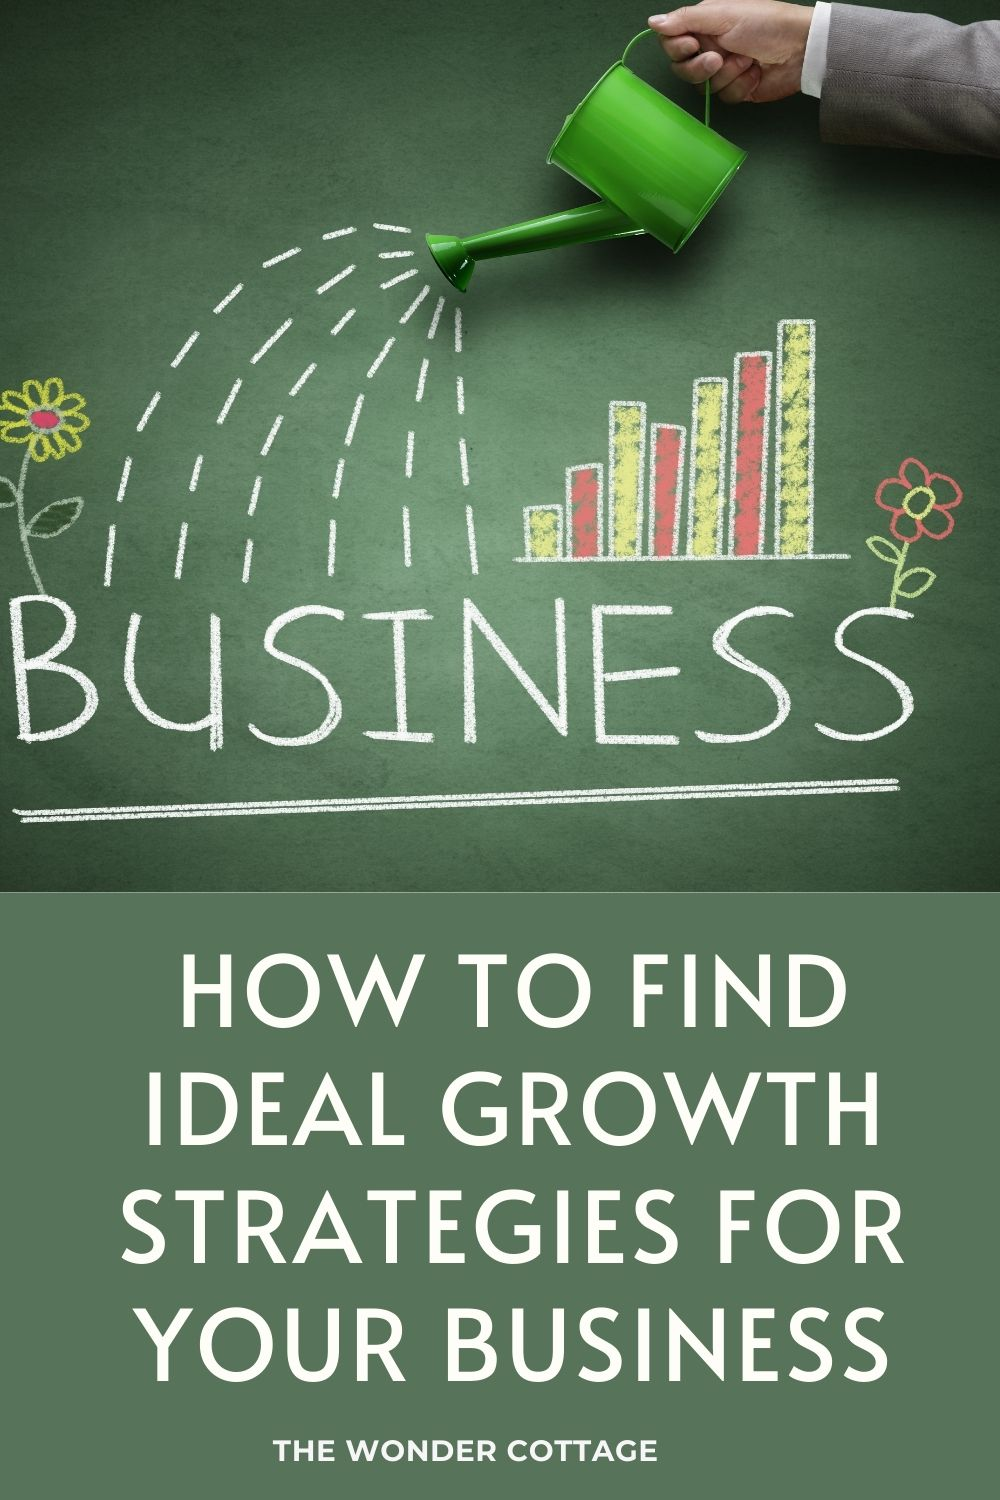 Finding ideal growth strategies for your business